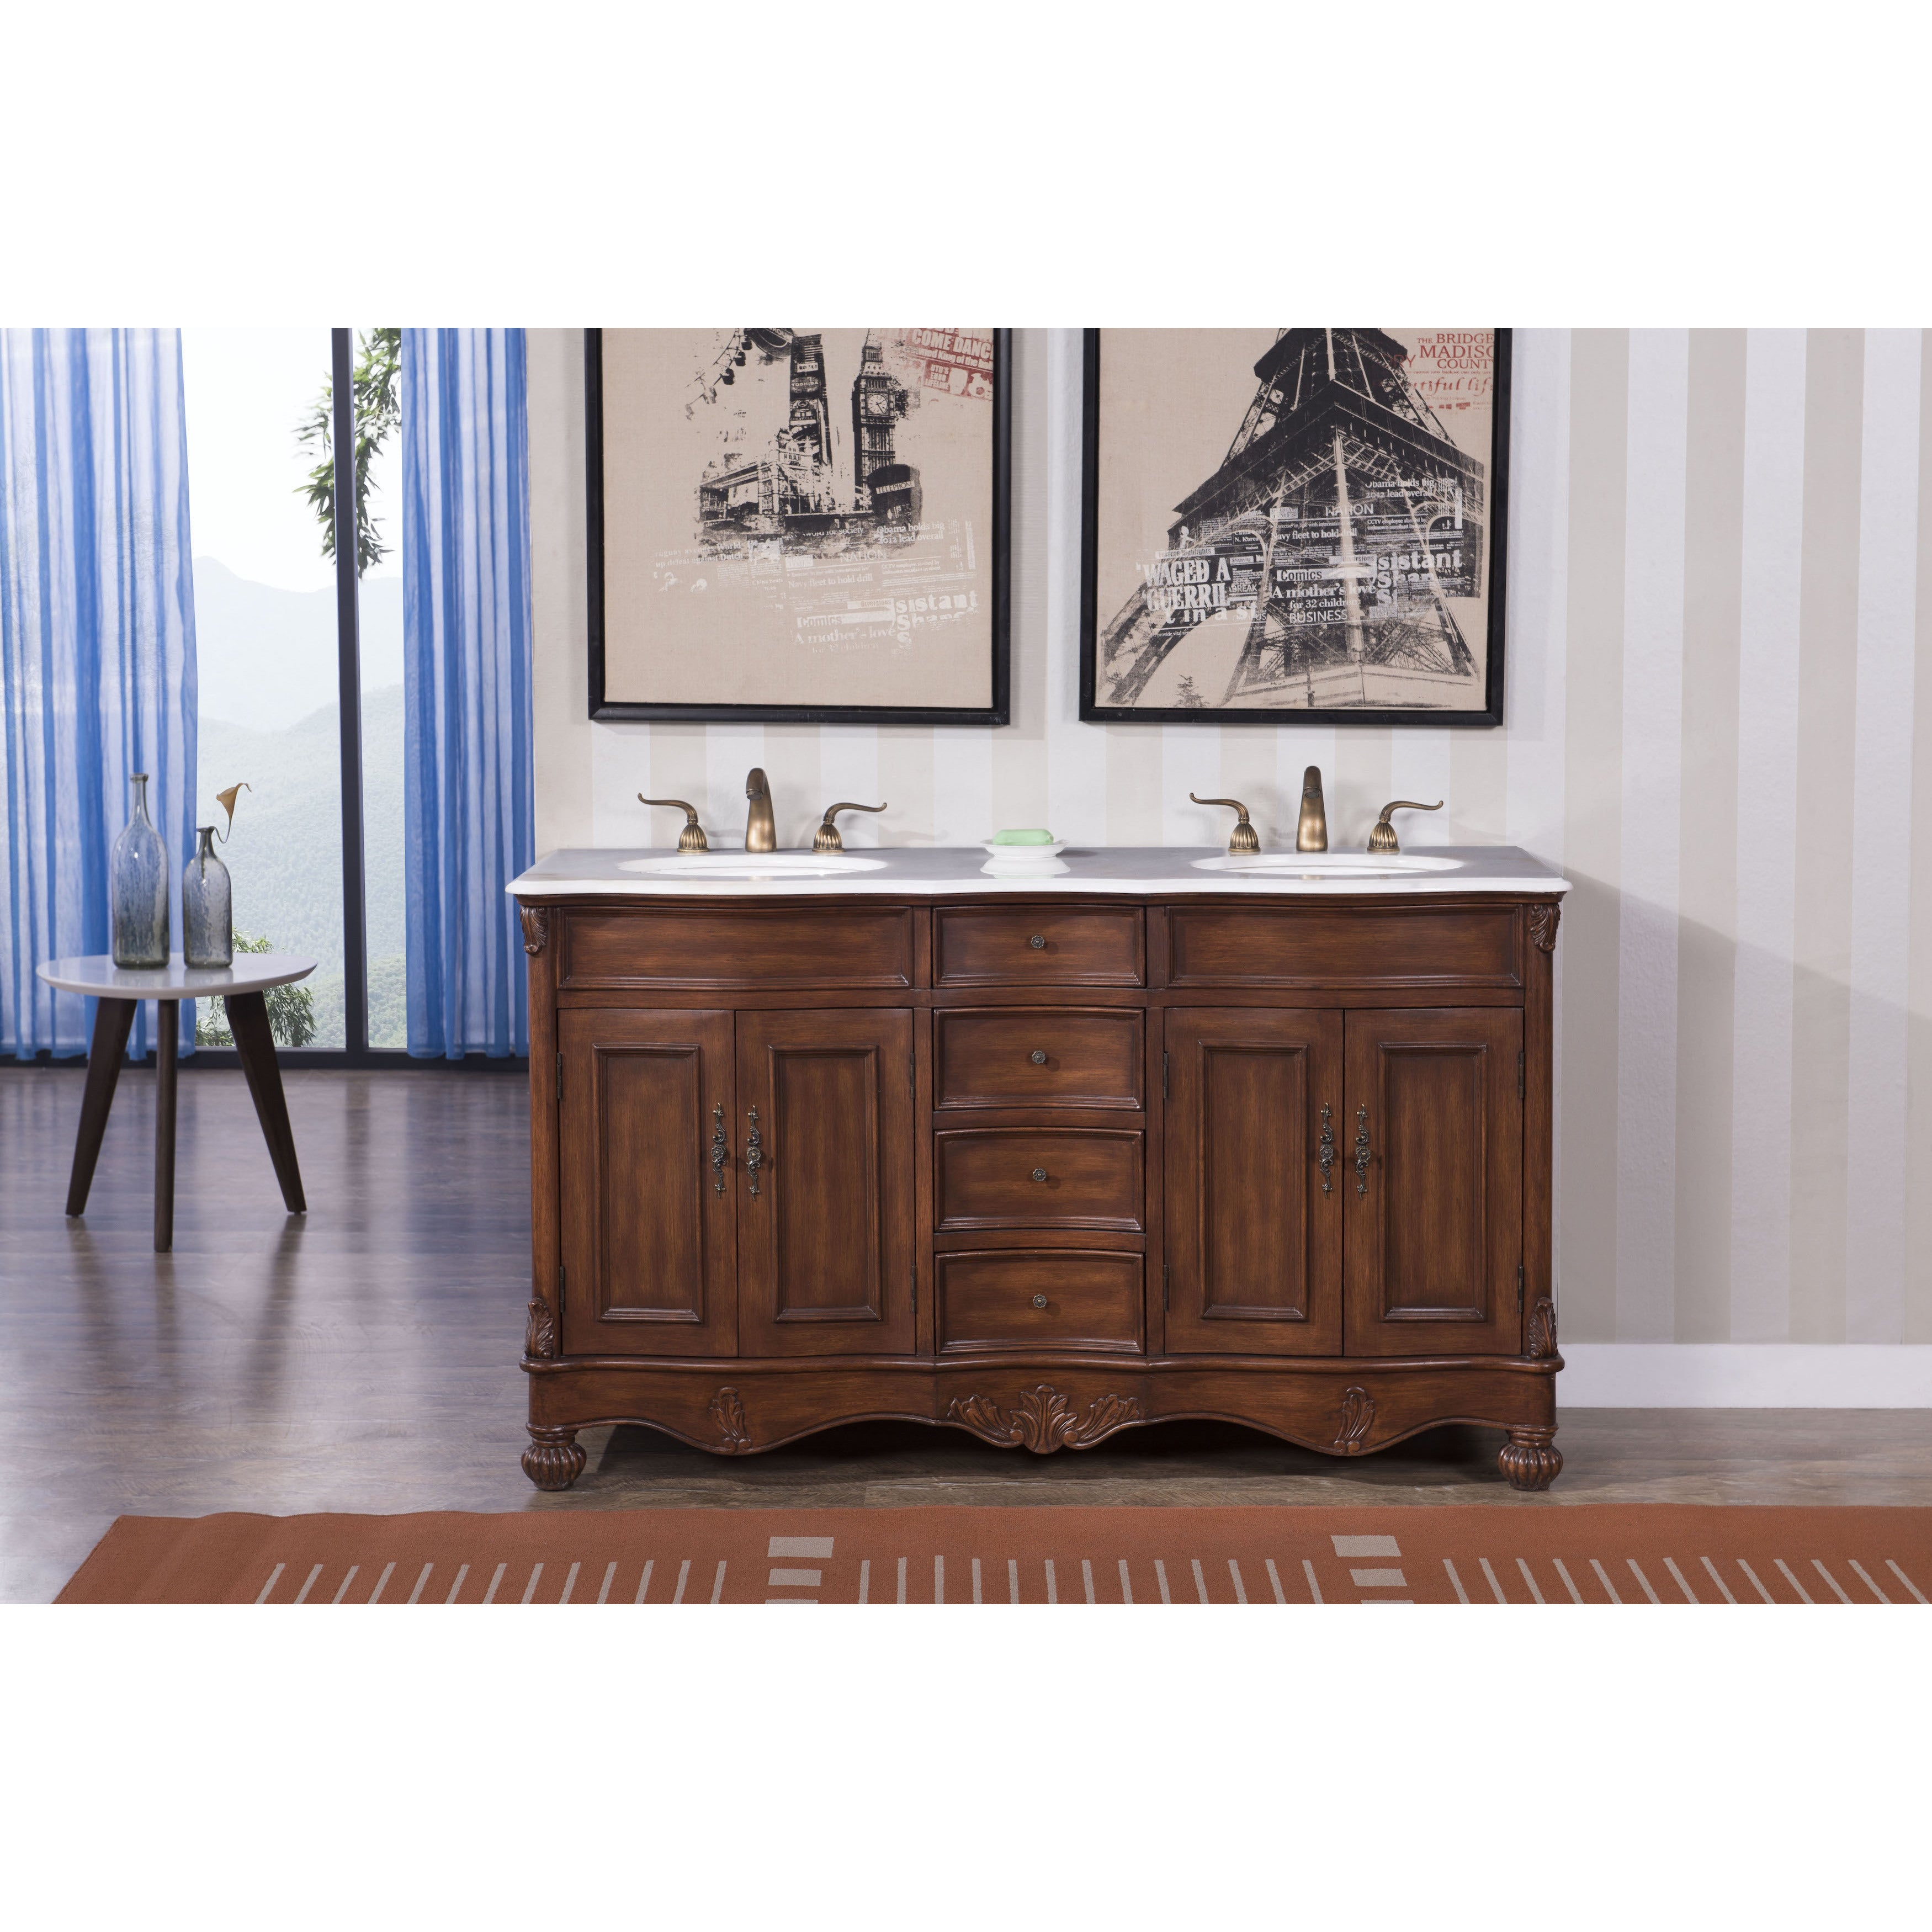 Shop Elegant Lighting Windsor 60 Inch Double Bathroom Vanity Free